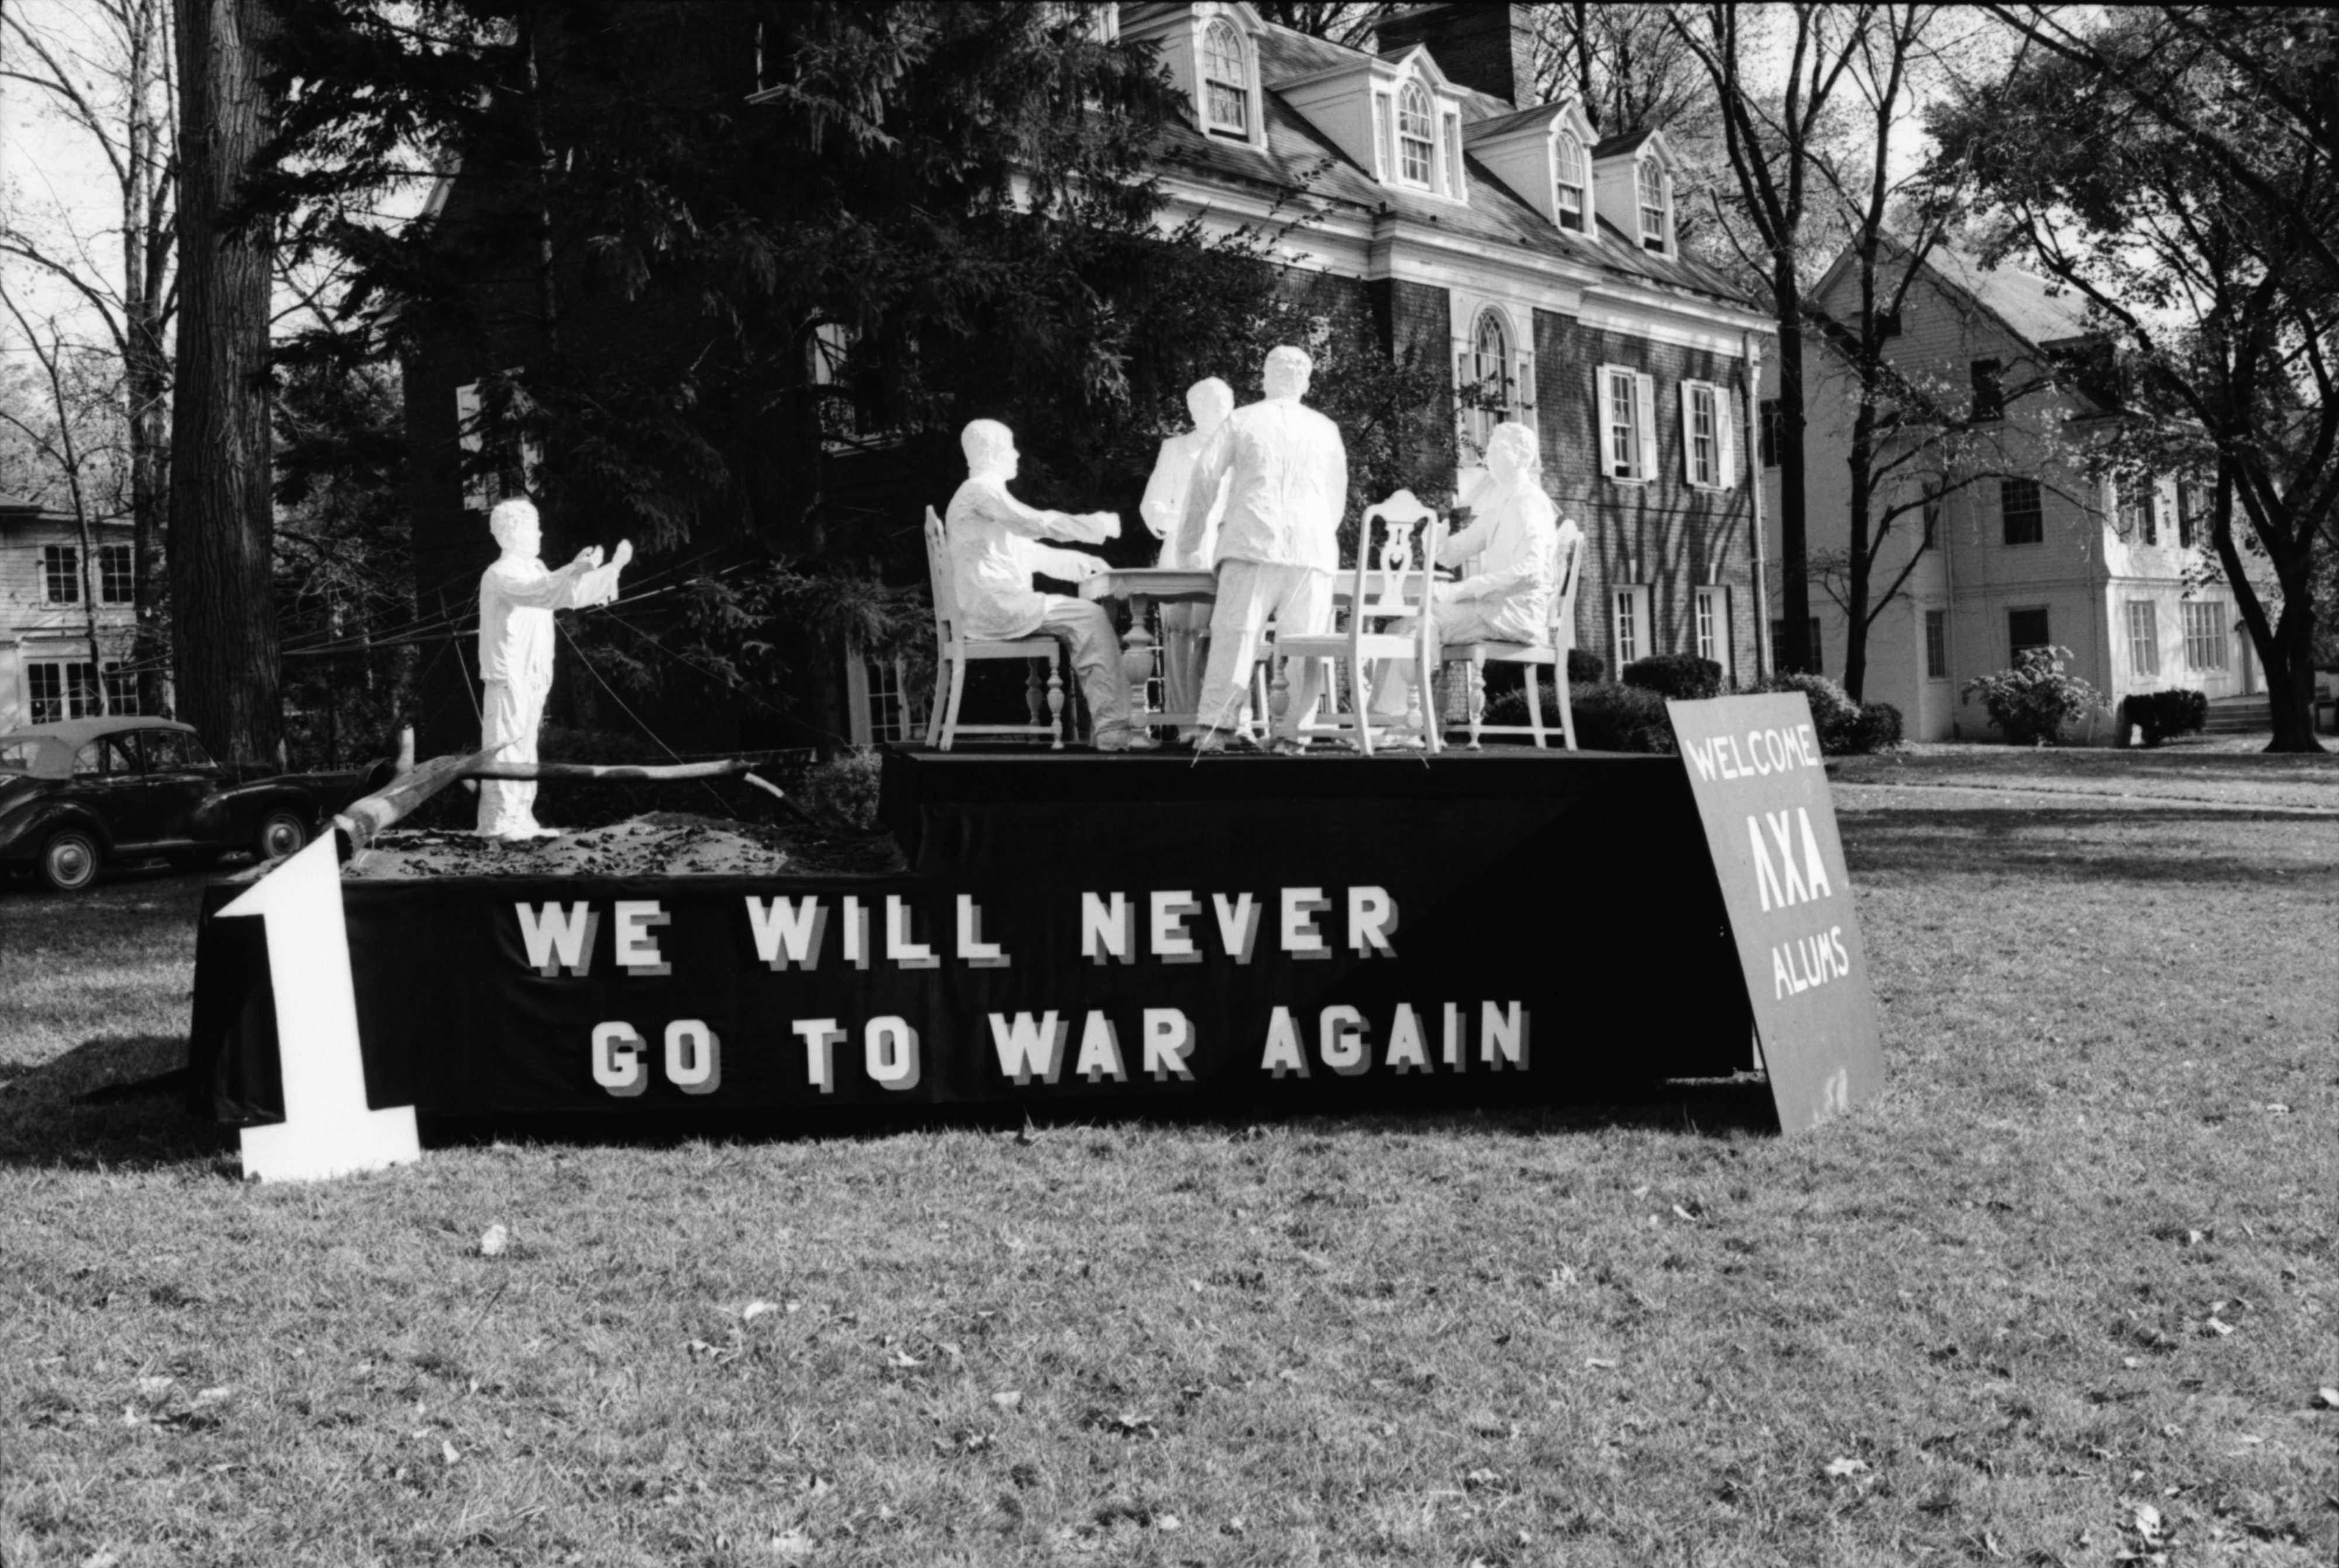 'Peace' float takes first place in University of Michigan Homecoming parade, October 1968 image